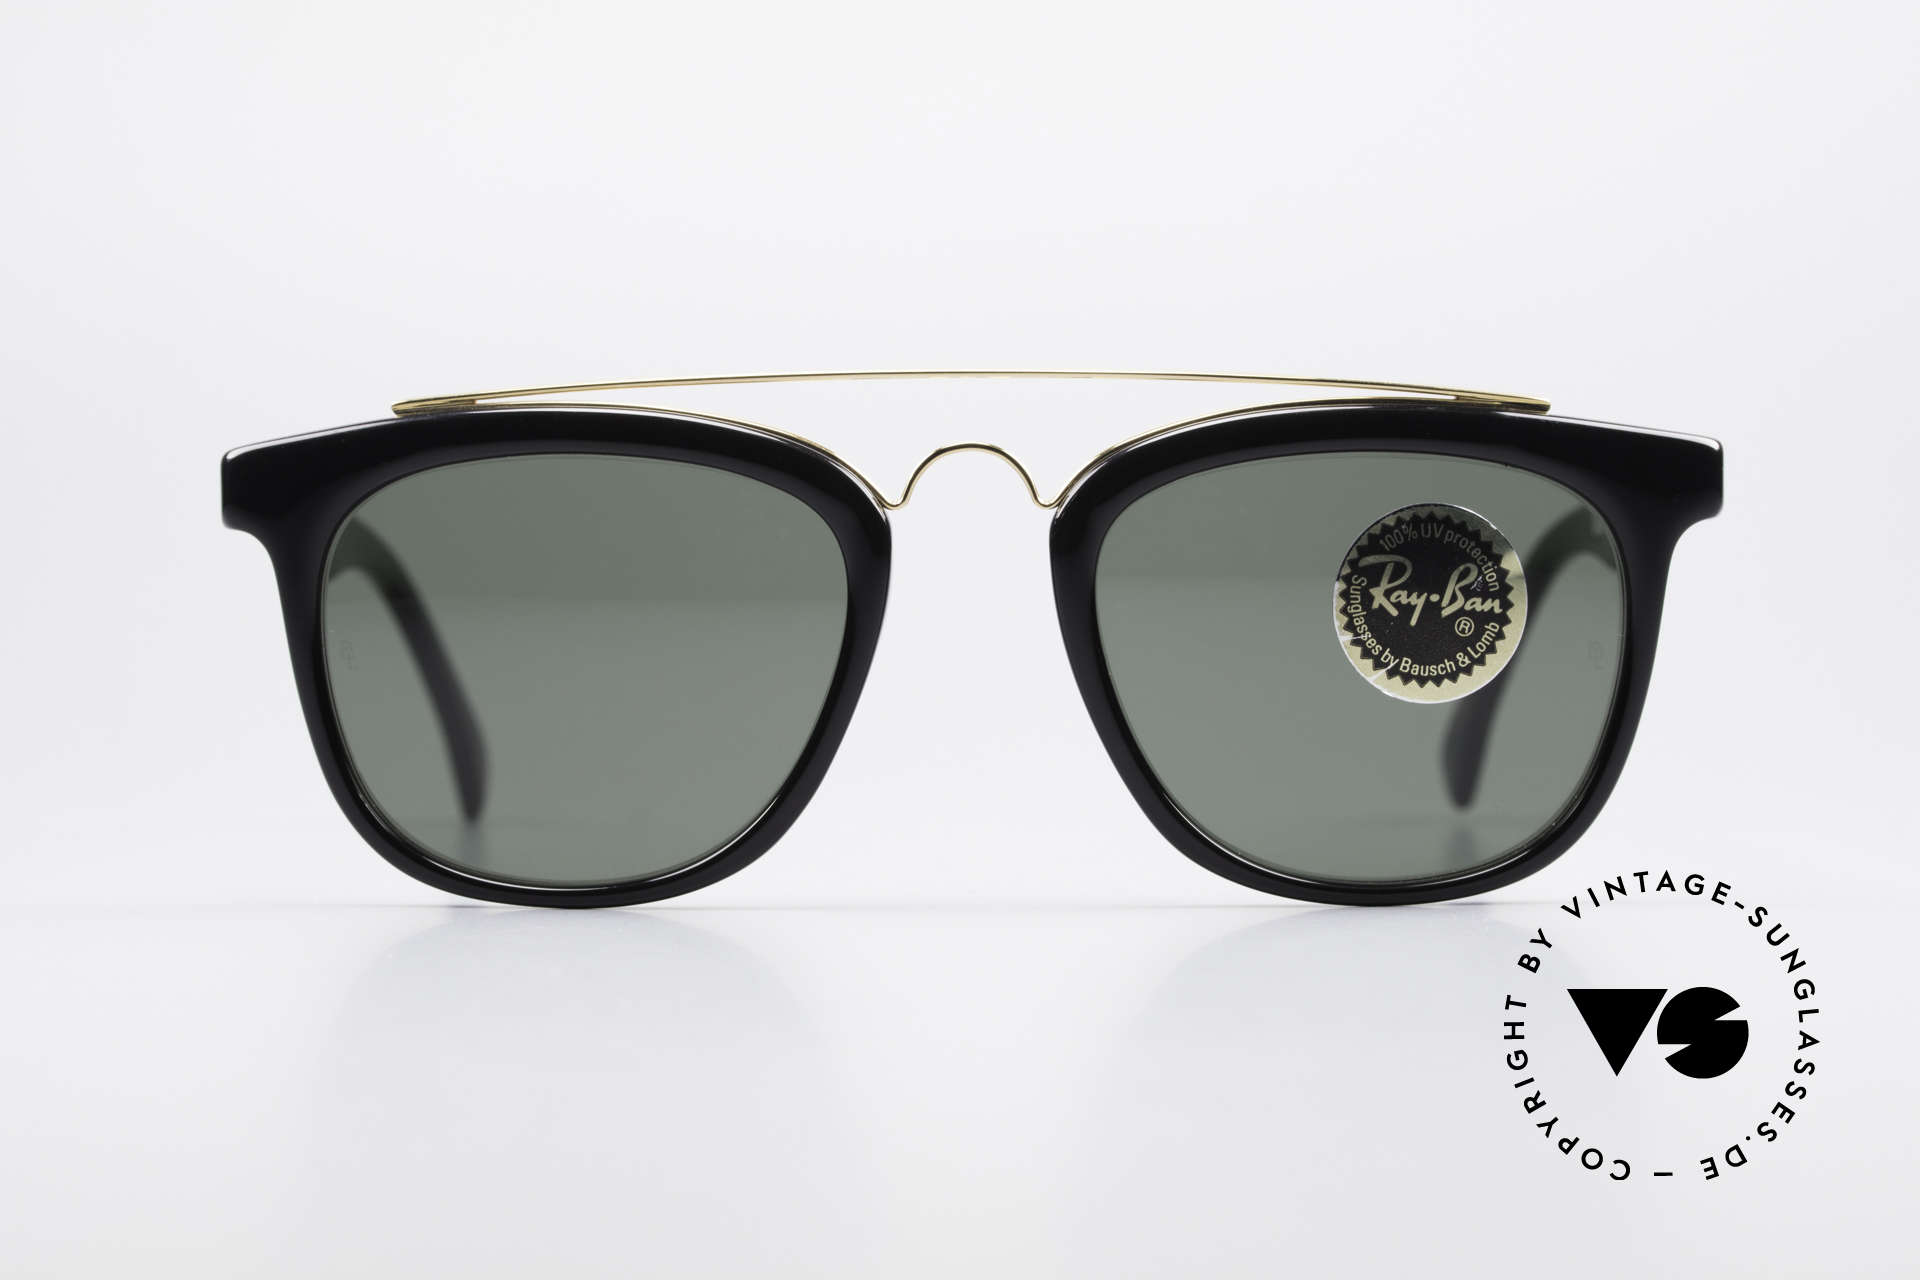 Ray Ban Gatsby Style 5 USA Bausch Lomb Sunglasses, vintage Ray Ban USA sunglasses of the 1990's, Made for Men and Women